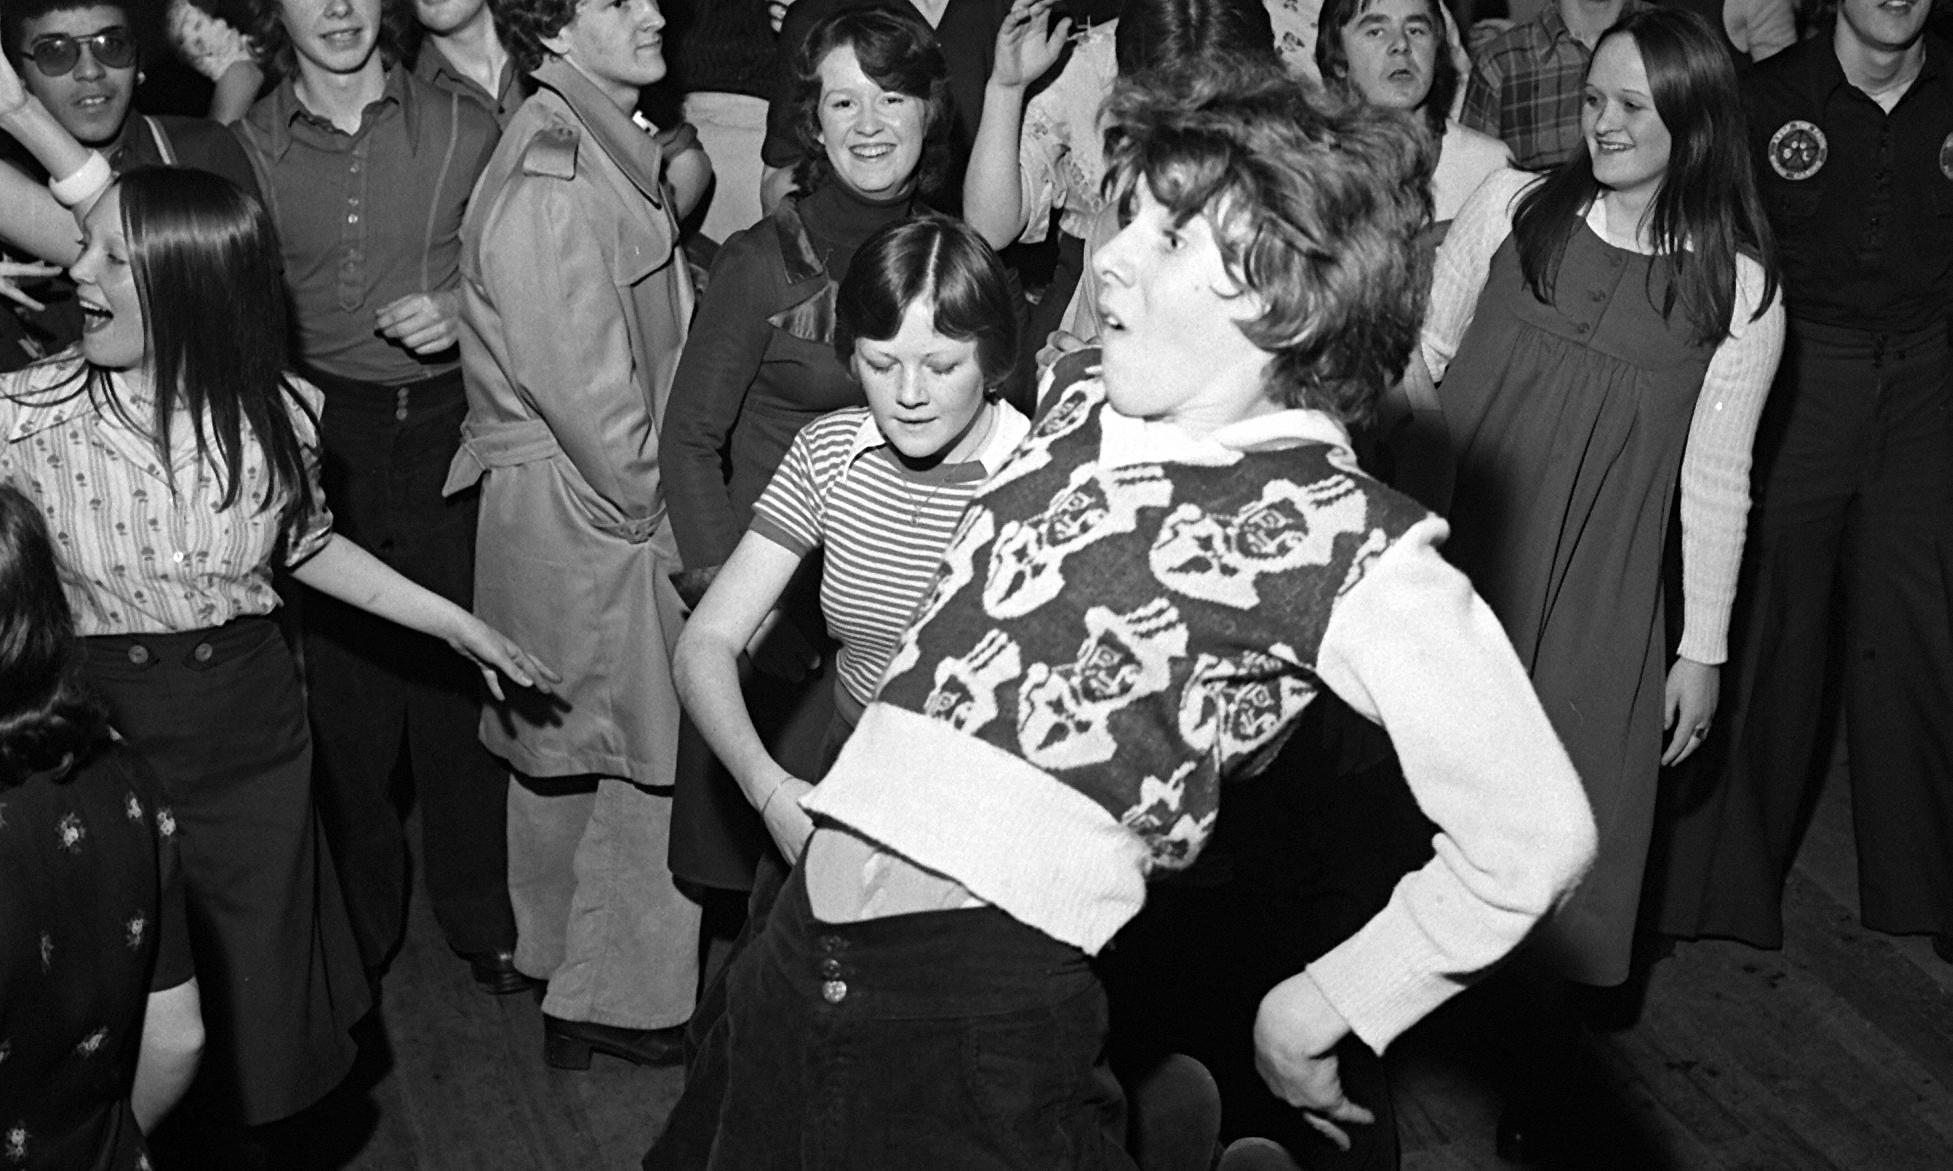 northern soul dancers wigan casino 1975